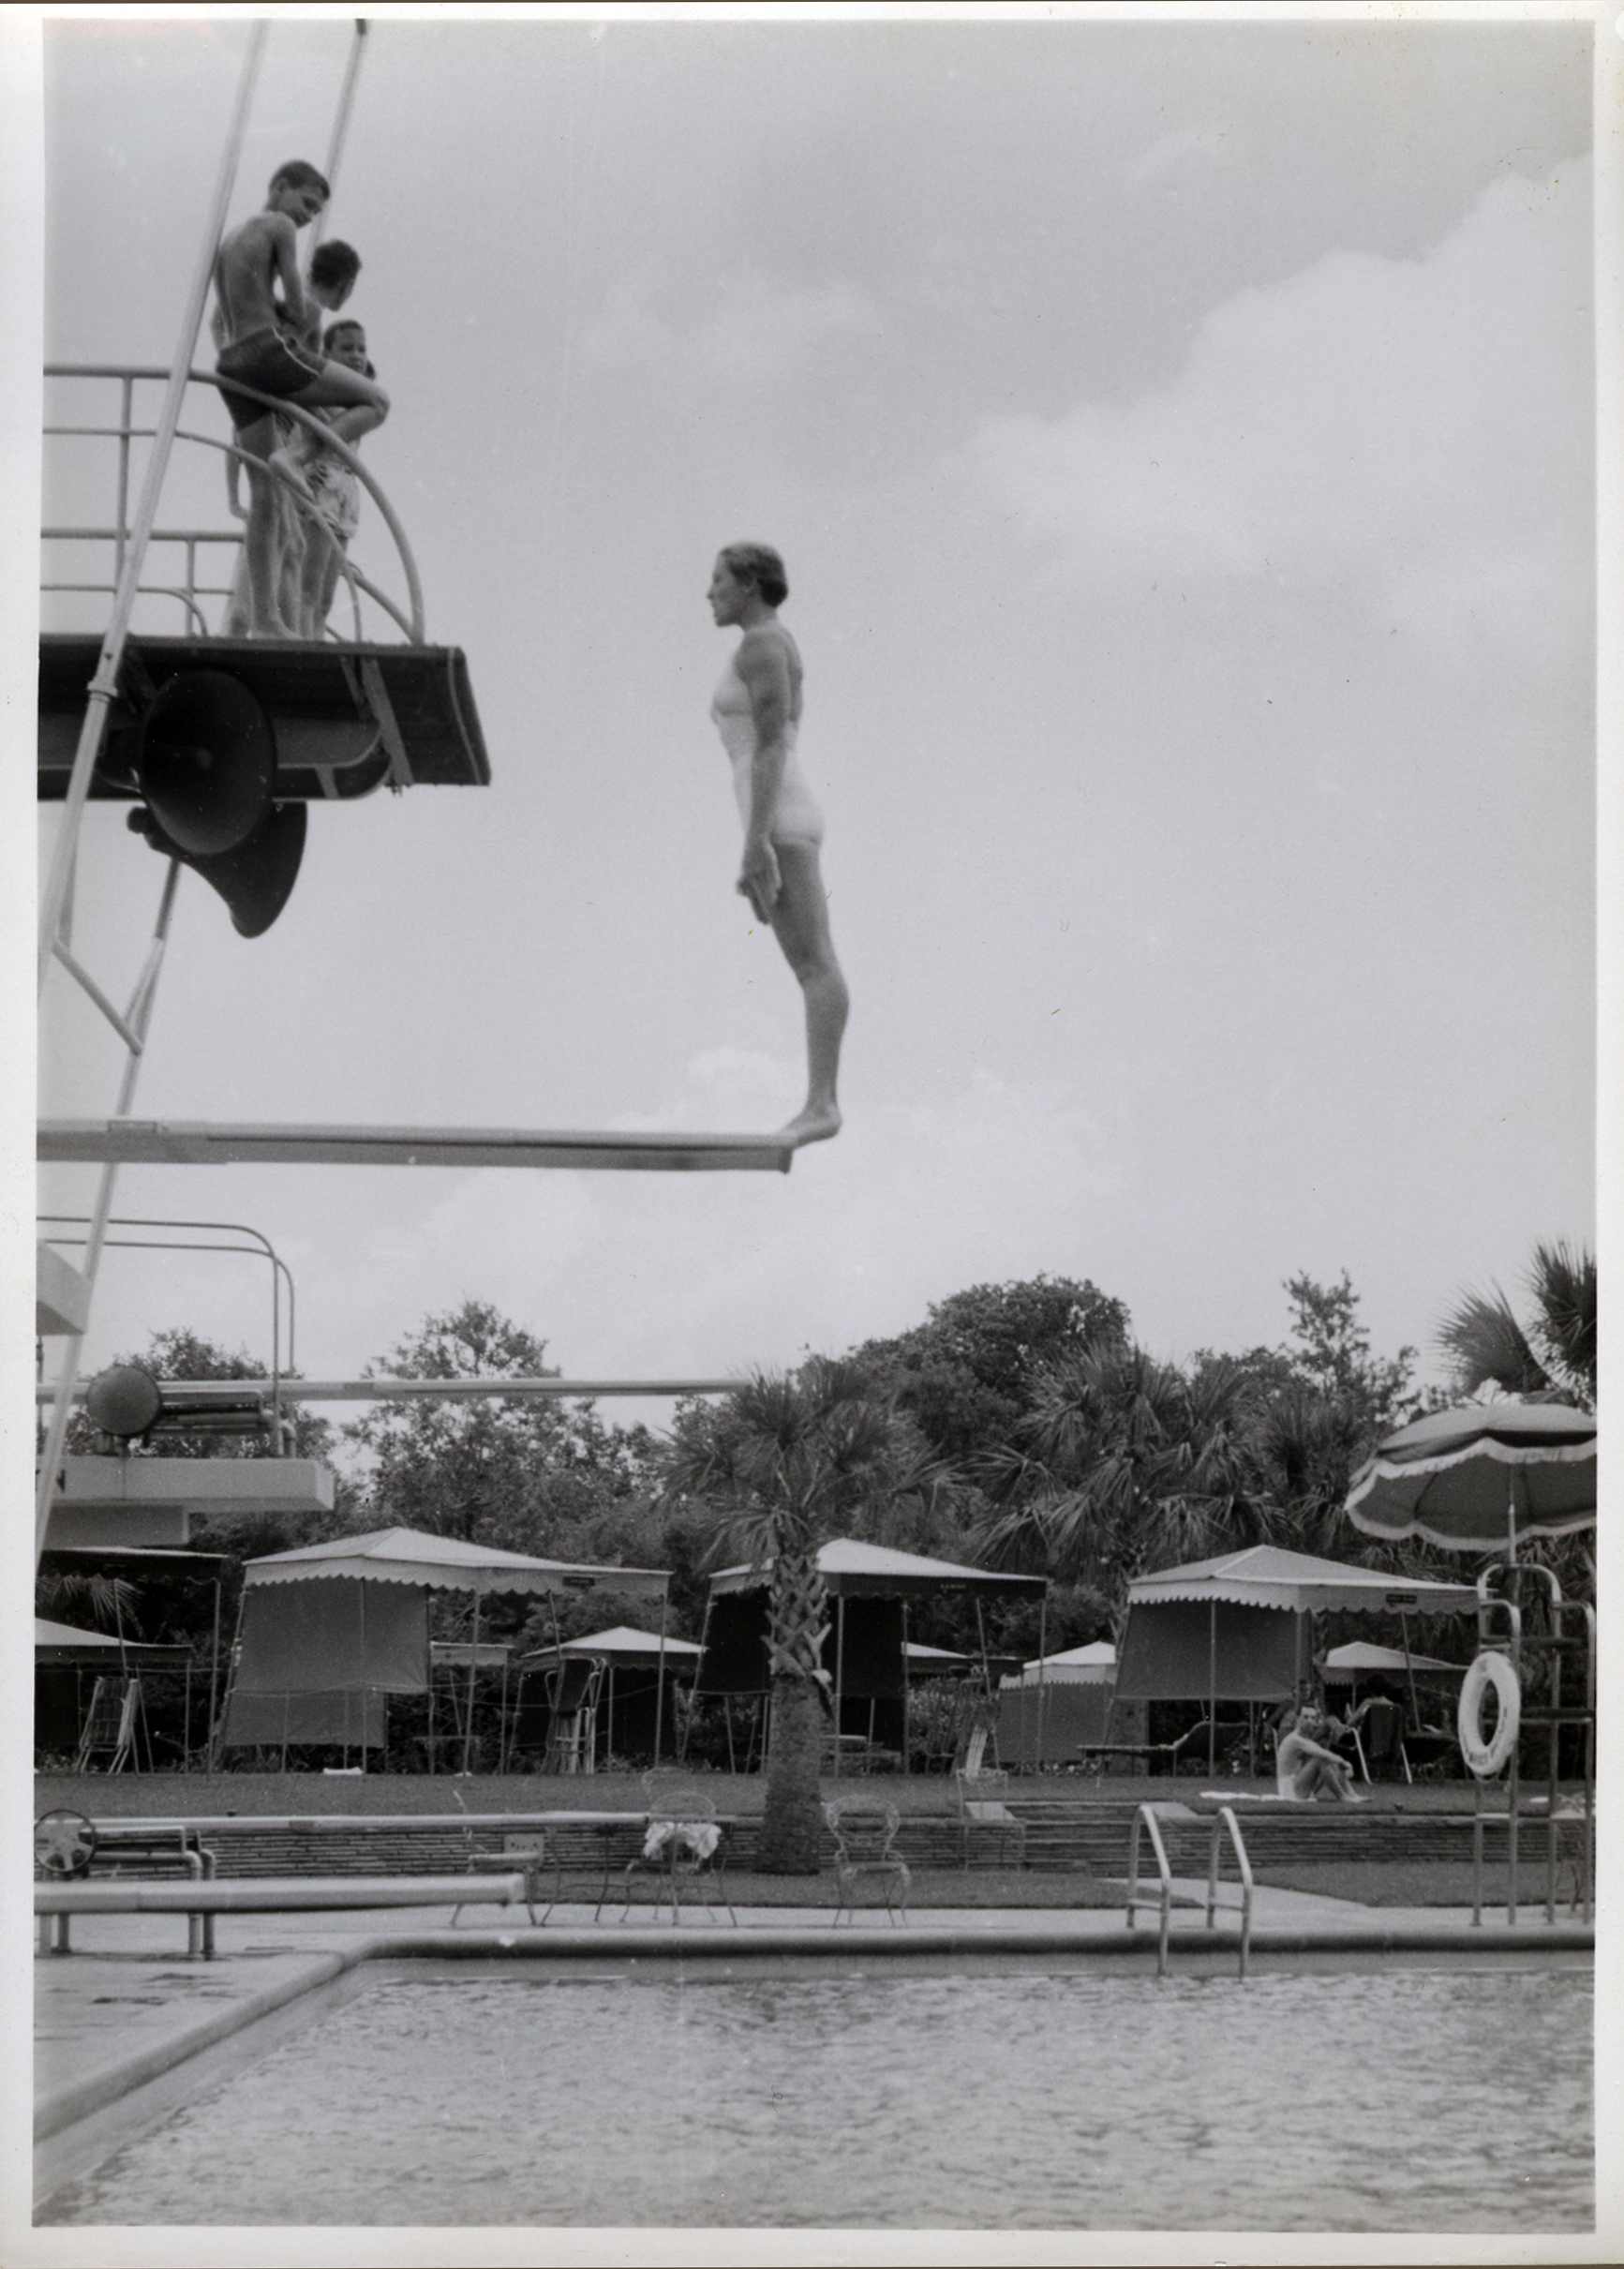 Diving at The Shamrock pool. Nancy Duty Cunningham, pictured here, began diving for The Shamrock in 1949 until 1957 at which time she started coaching. She remained as a diving coach there until 1973.  Photo Courtesy of Nancy Duty Cunningham.